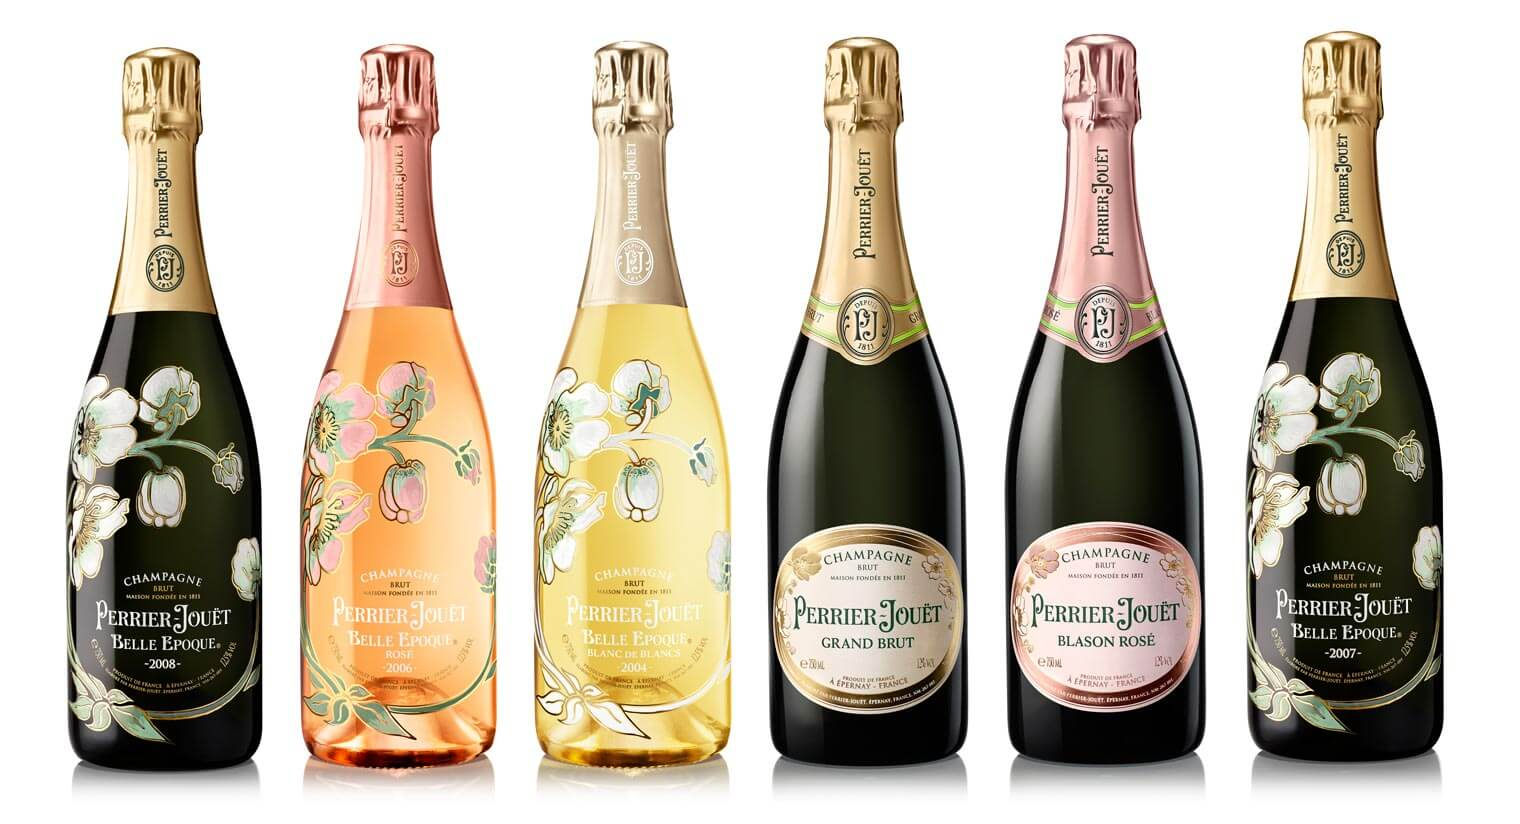 Perrier-Jouët Champagne lineup